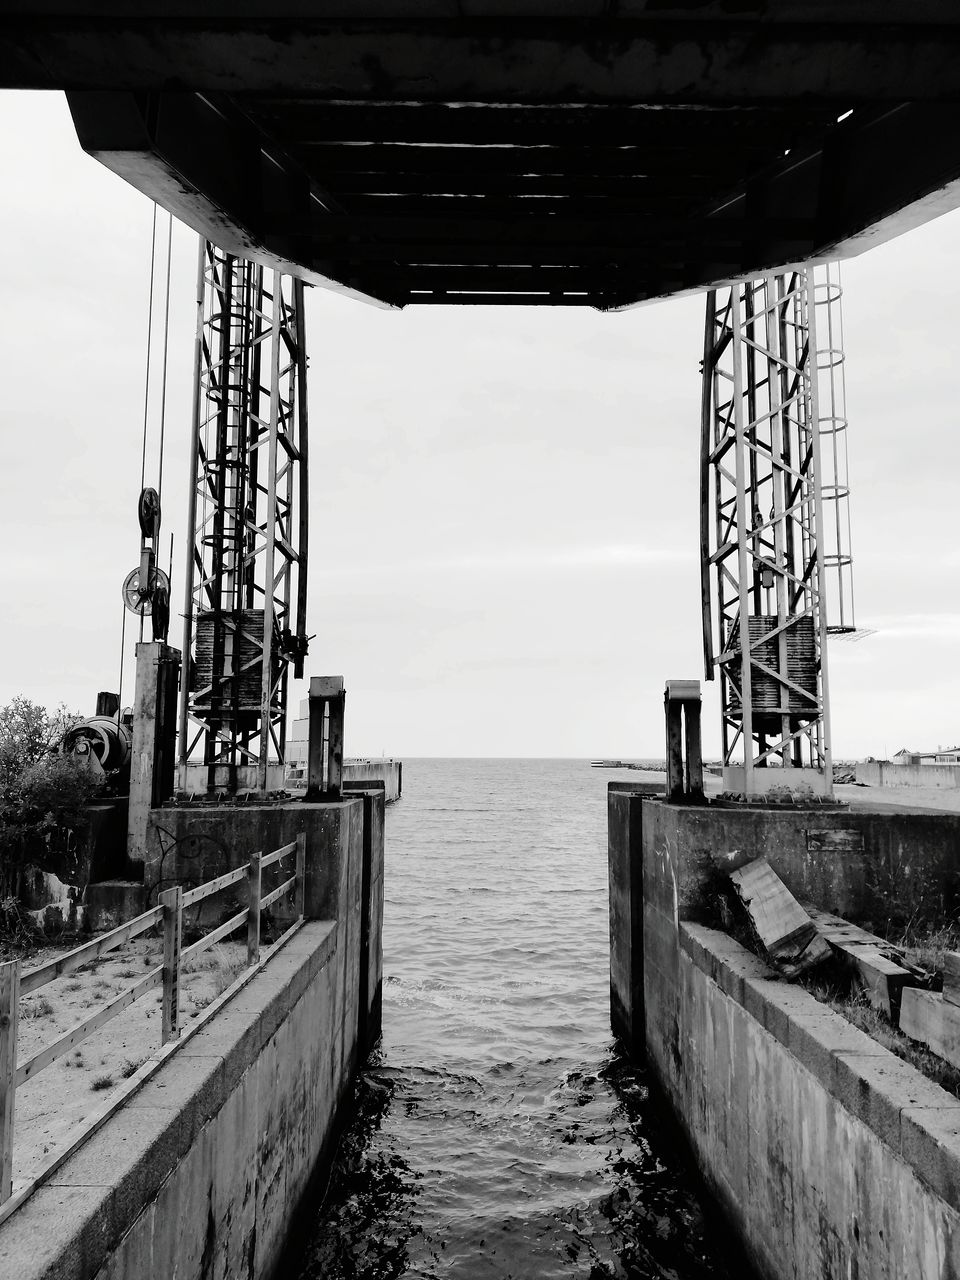 sky, water, architecture, built structure, nature, metal, sea, day, no people, outdoors, industry, connection, bridge, pier, transportation, bridge - man made structure, cloud - sky, waterfront